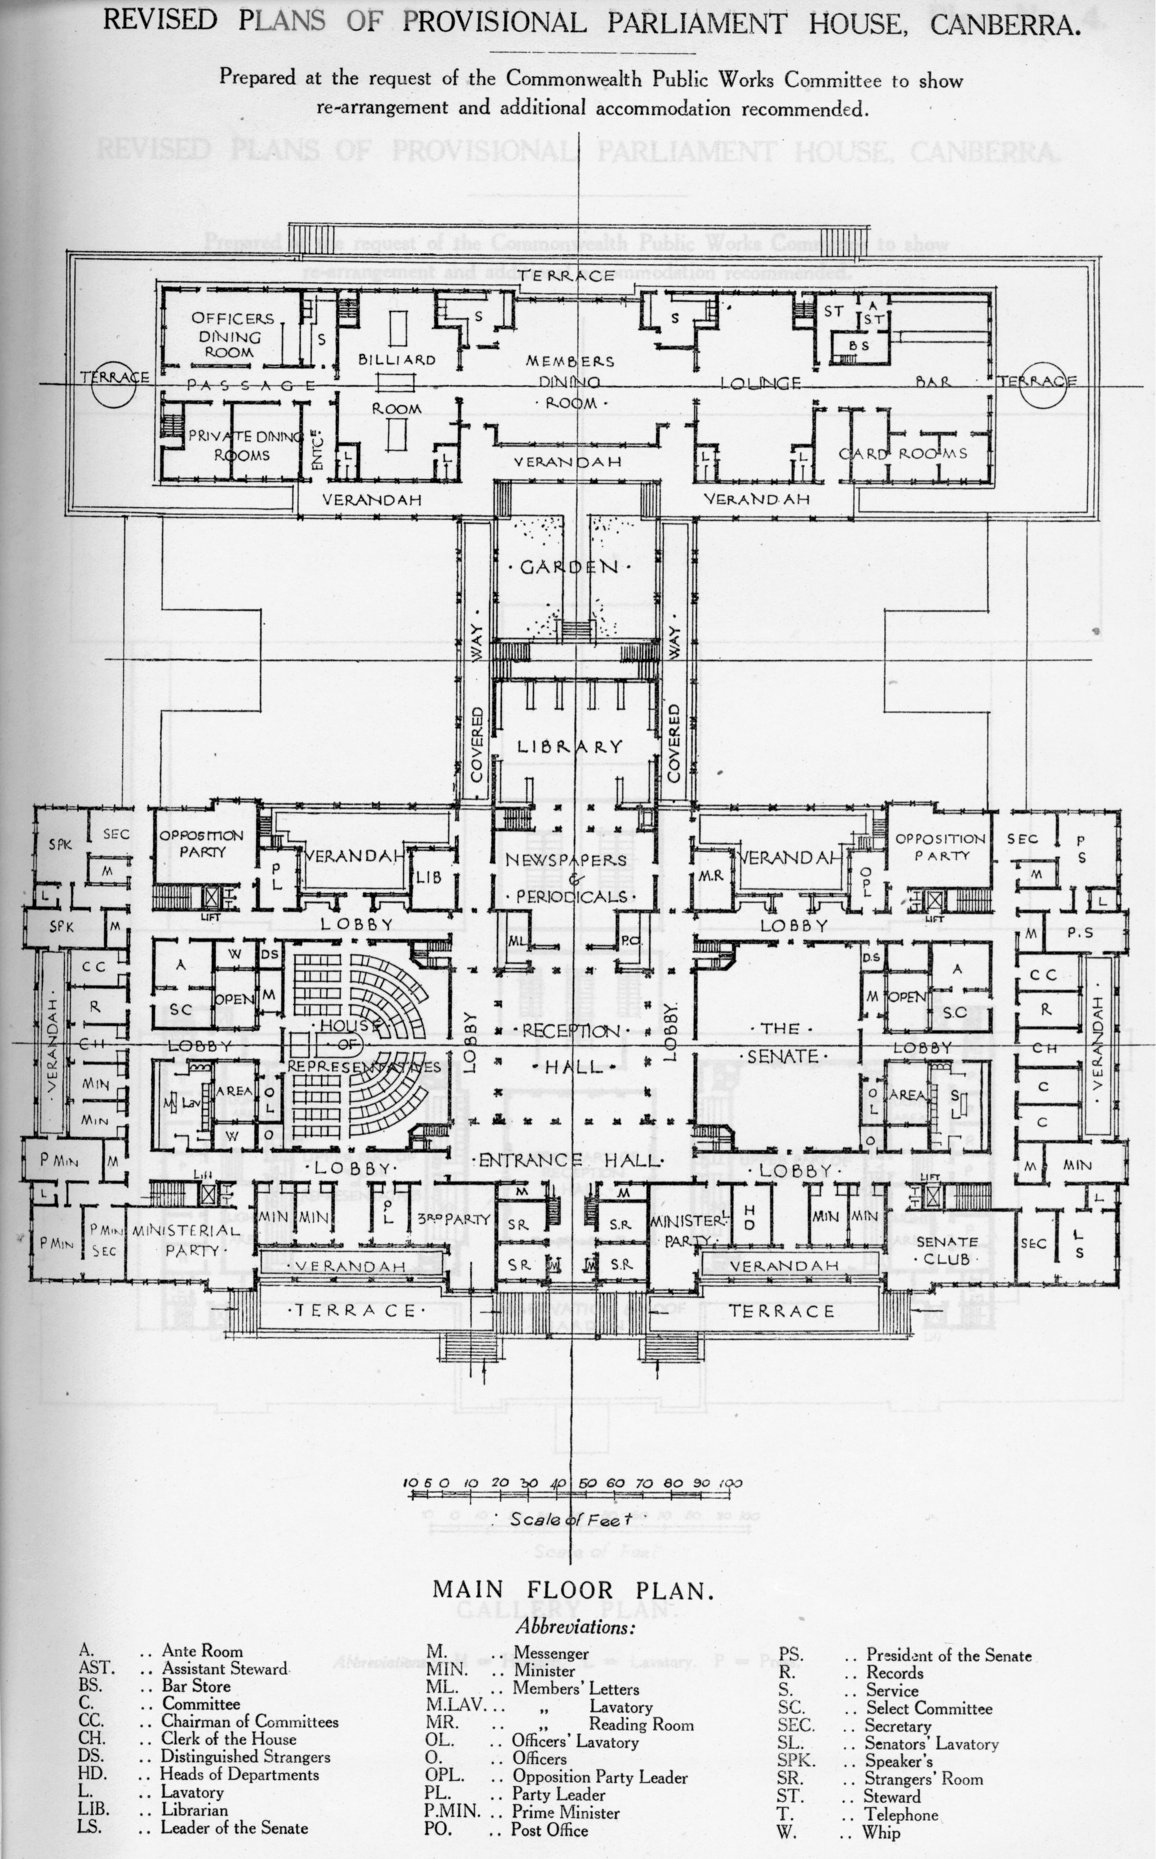 House Of Representatives Floor Plan As It Was In The Beginning Parliament House In 1927